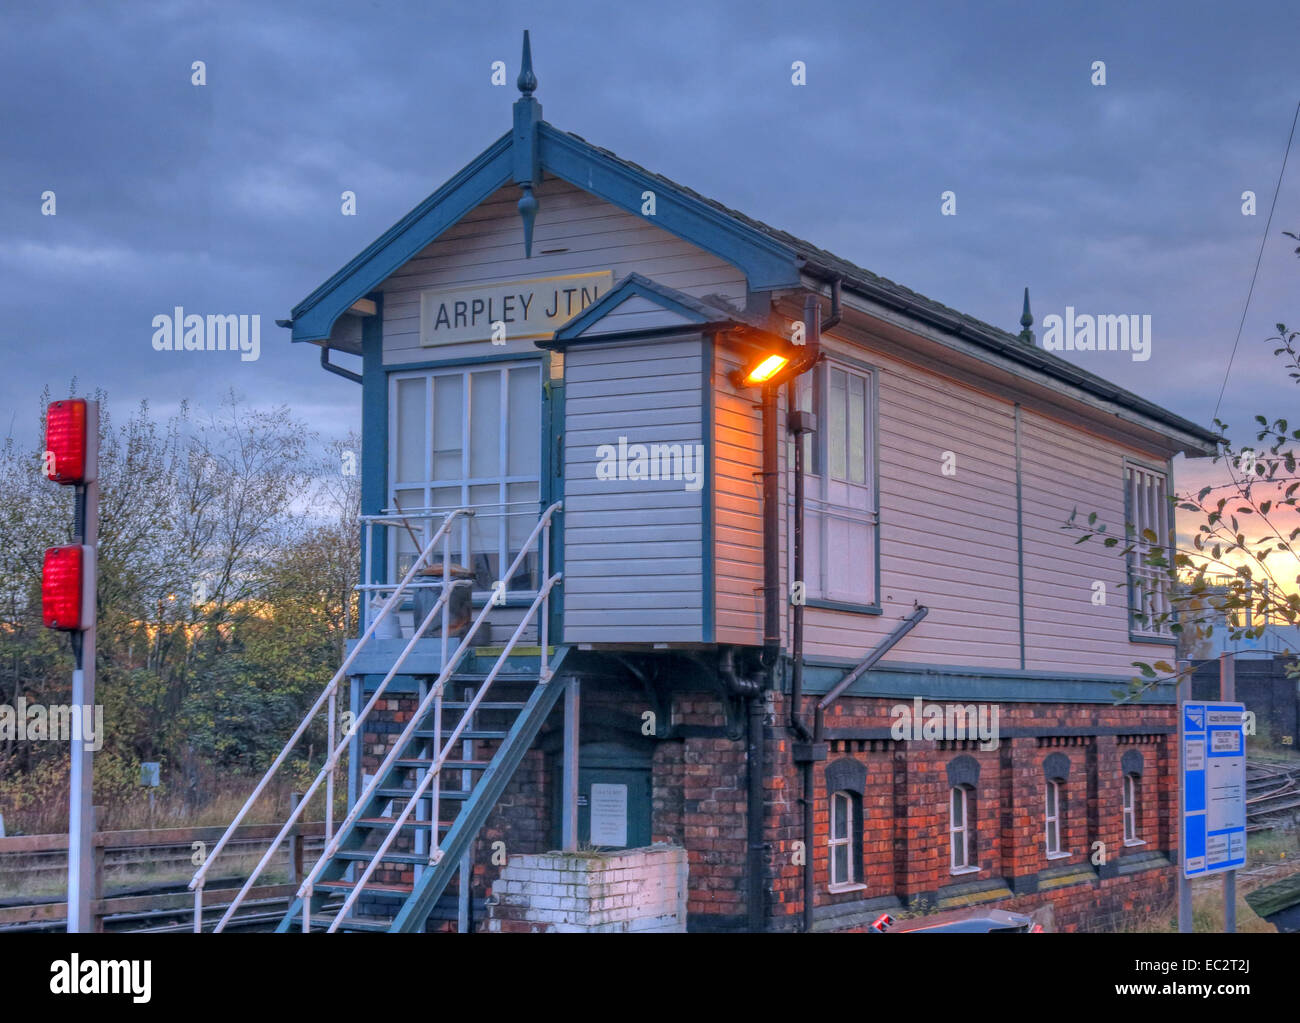 Jc,Jct,Jcn,signal,box,Bank,Quay,Quey,WBQ,railway,station,lin,lines,night,shot,England,UK,at,dusk,coal,train,goods,line,Latchford,Sidings,yard,yards,Liverpool,Bulk,Terminal,BR,British,Rail,old,wooden,signalling,signals,railroad,Ditton,Junction,to,Skelton,GoTonySmith Fiddlers Ferry Power Station,Buy Pictures of,Buy Images Of